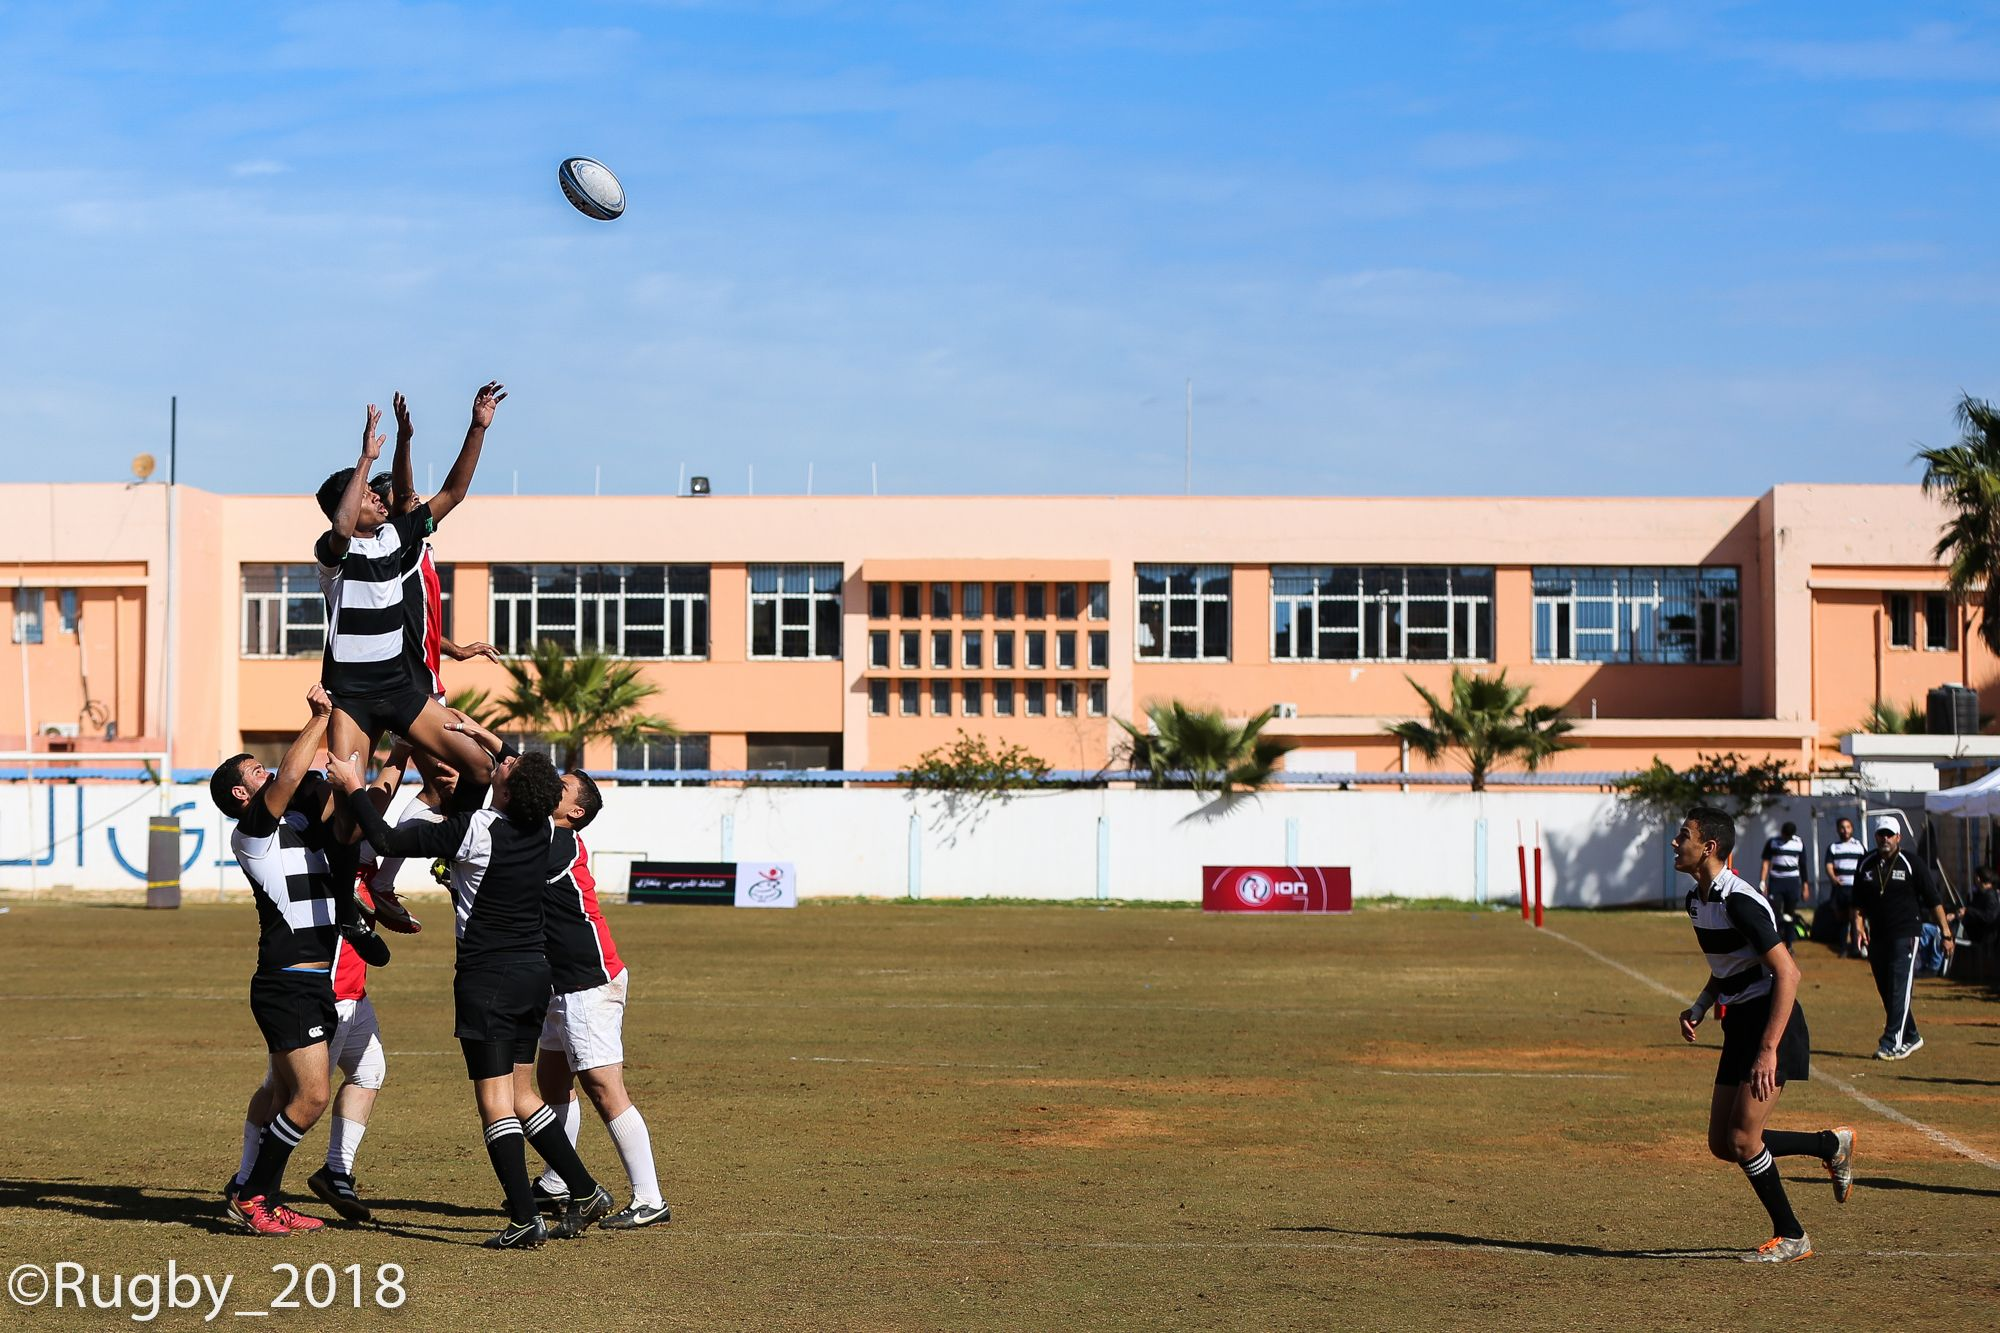 Rugby League In Libya Just For Rugby In Benghazi Libya Rugby League Benghazi Libya Rugby